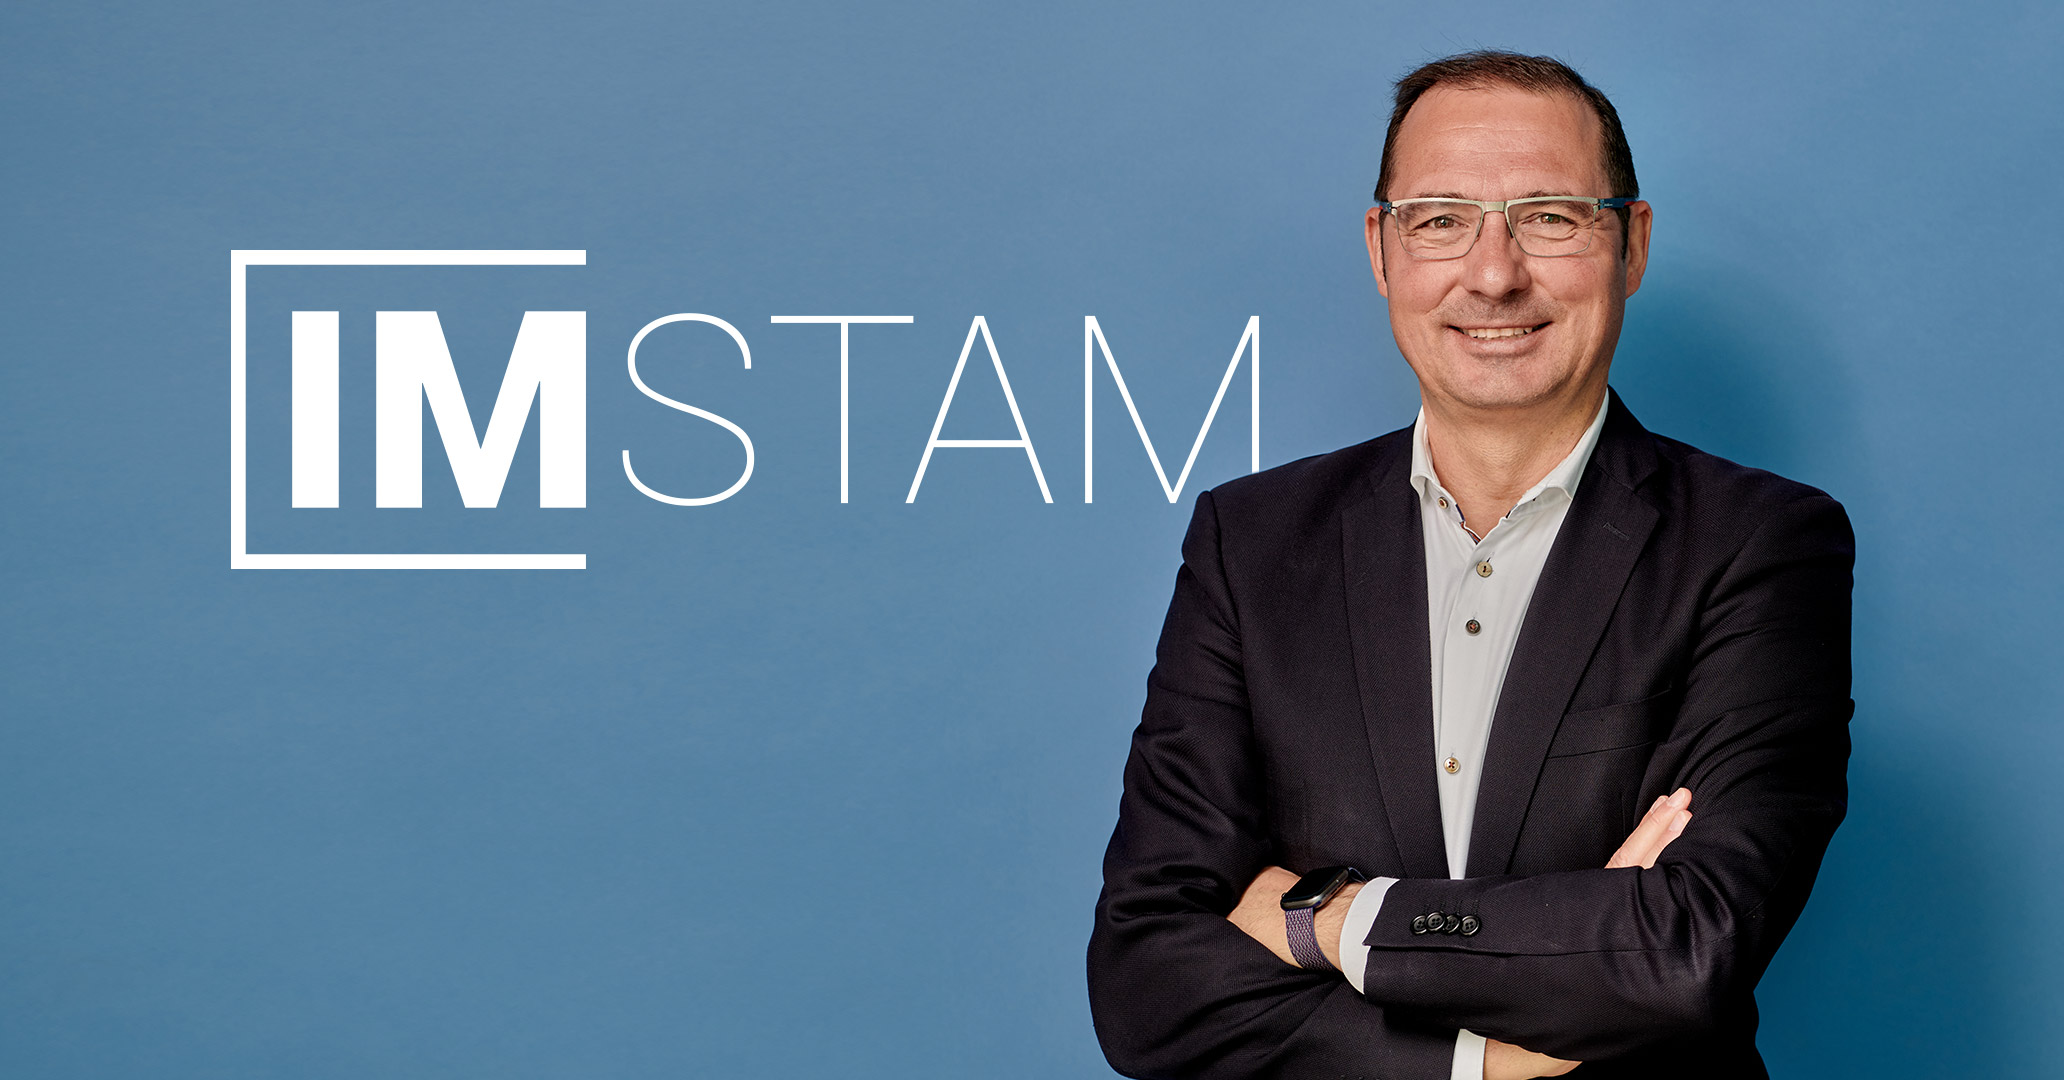 teamElgato News – IMSTAM